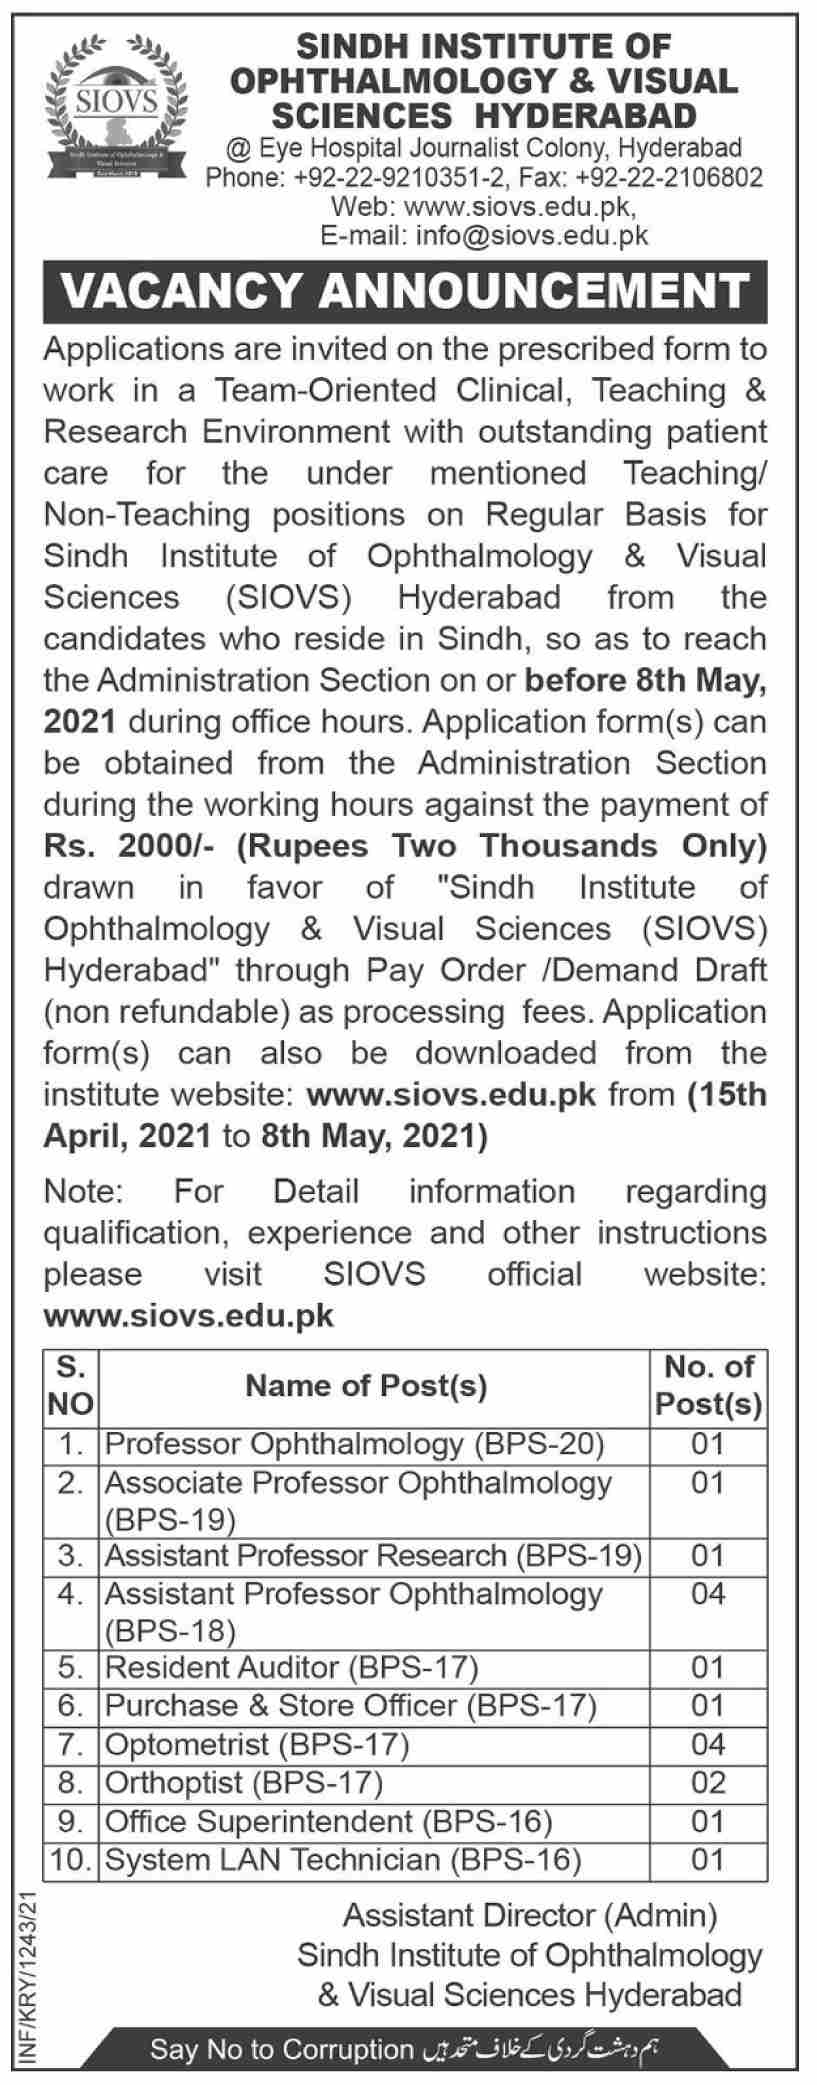 Sindh Institute of Ophthalmology & Visual Sciences (SIOVS) Hyderabad Jobs 2021 in Pakistan